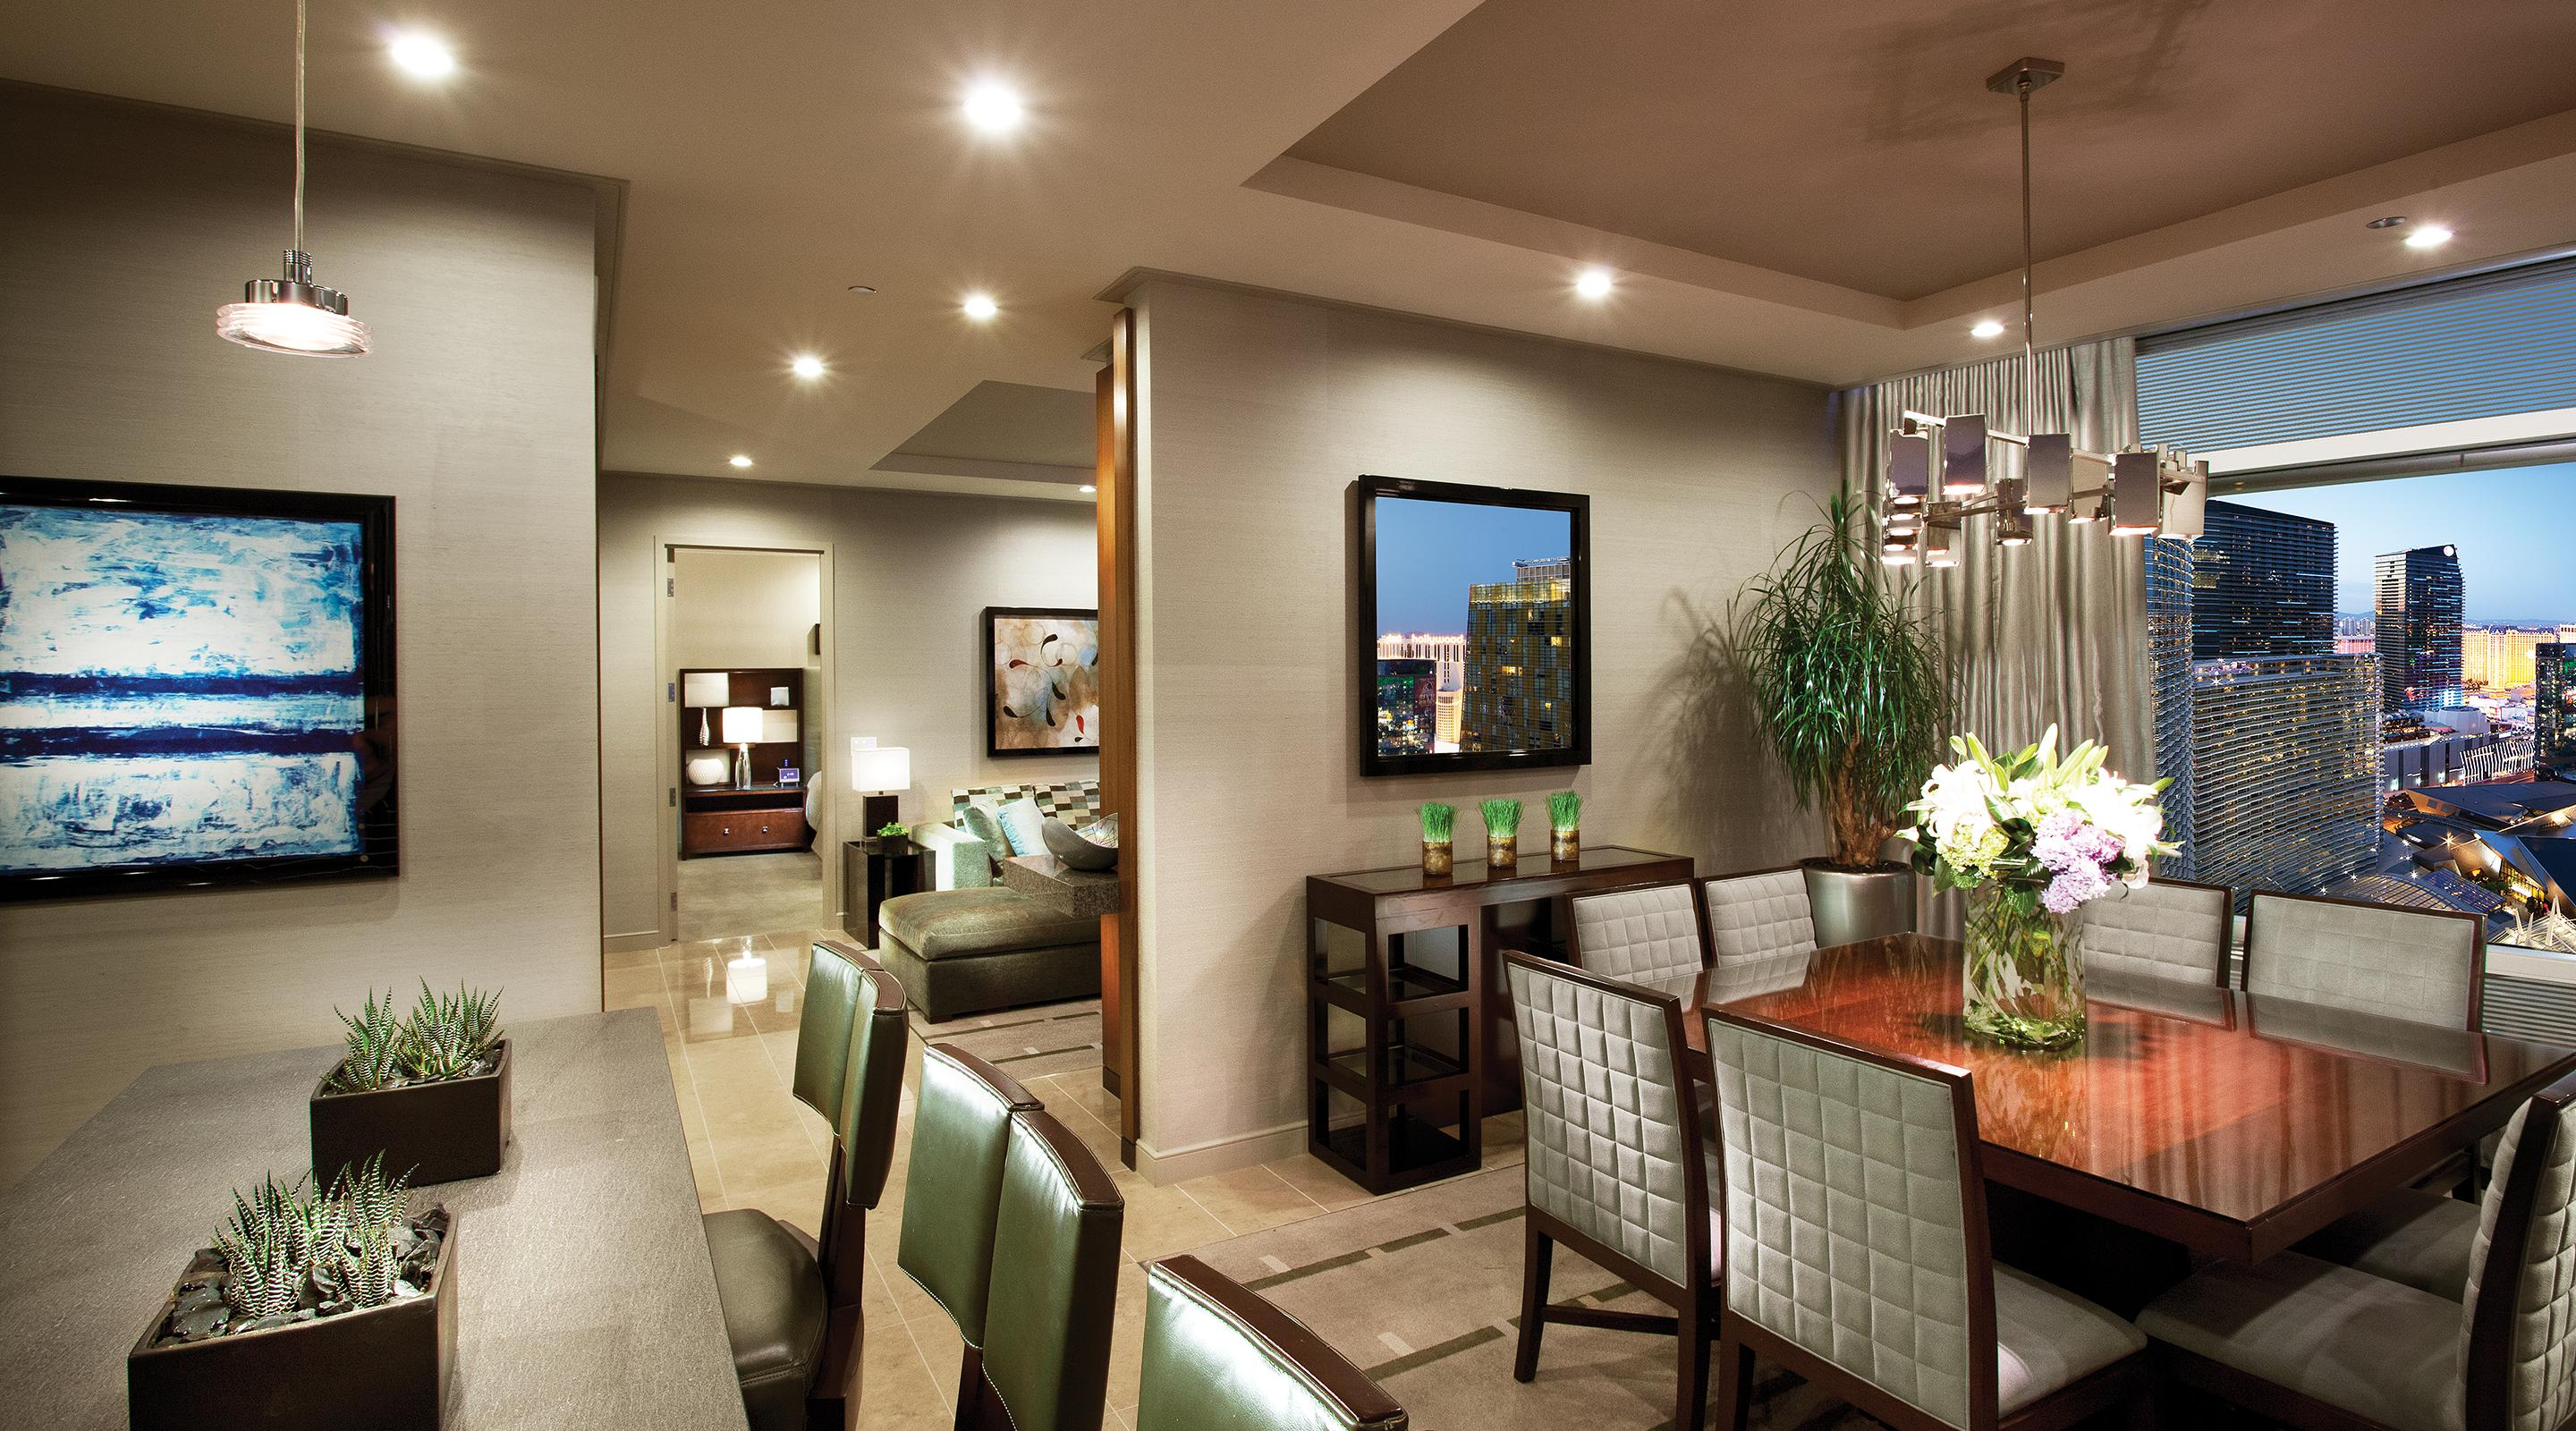 A dining area with a nice city view.